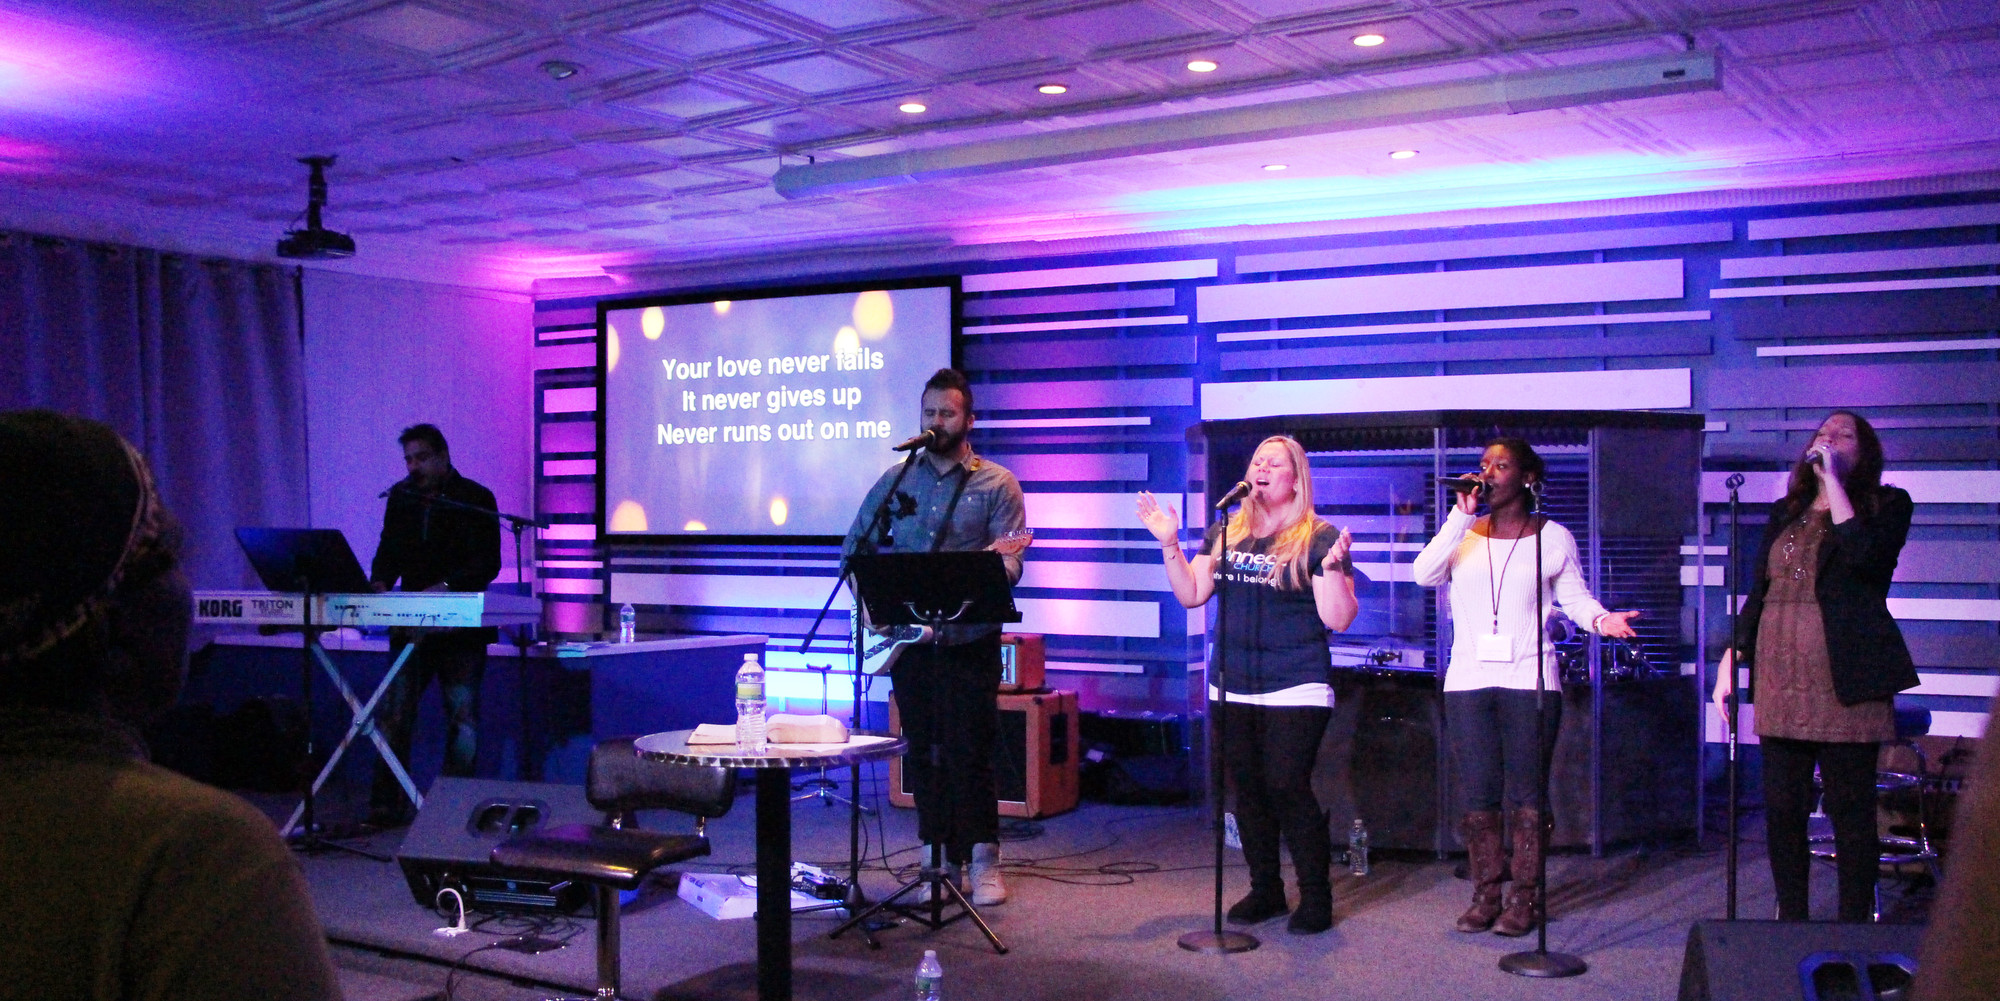 Before the food was distributed, Connect Church held a service at which members sang songs of thankfulness.